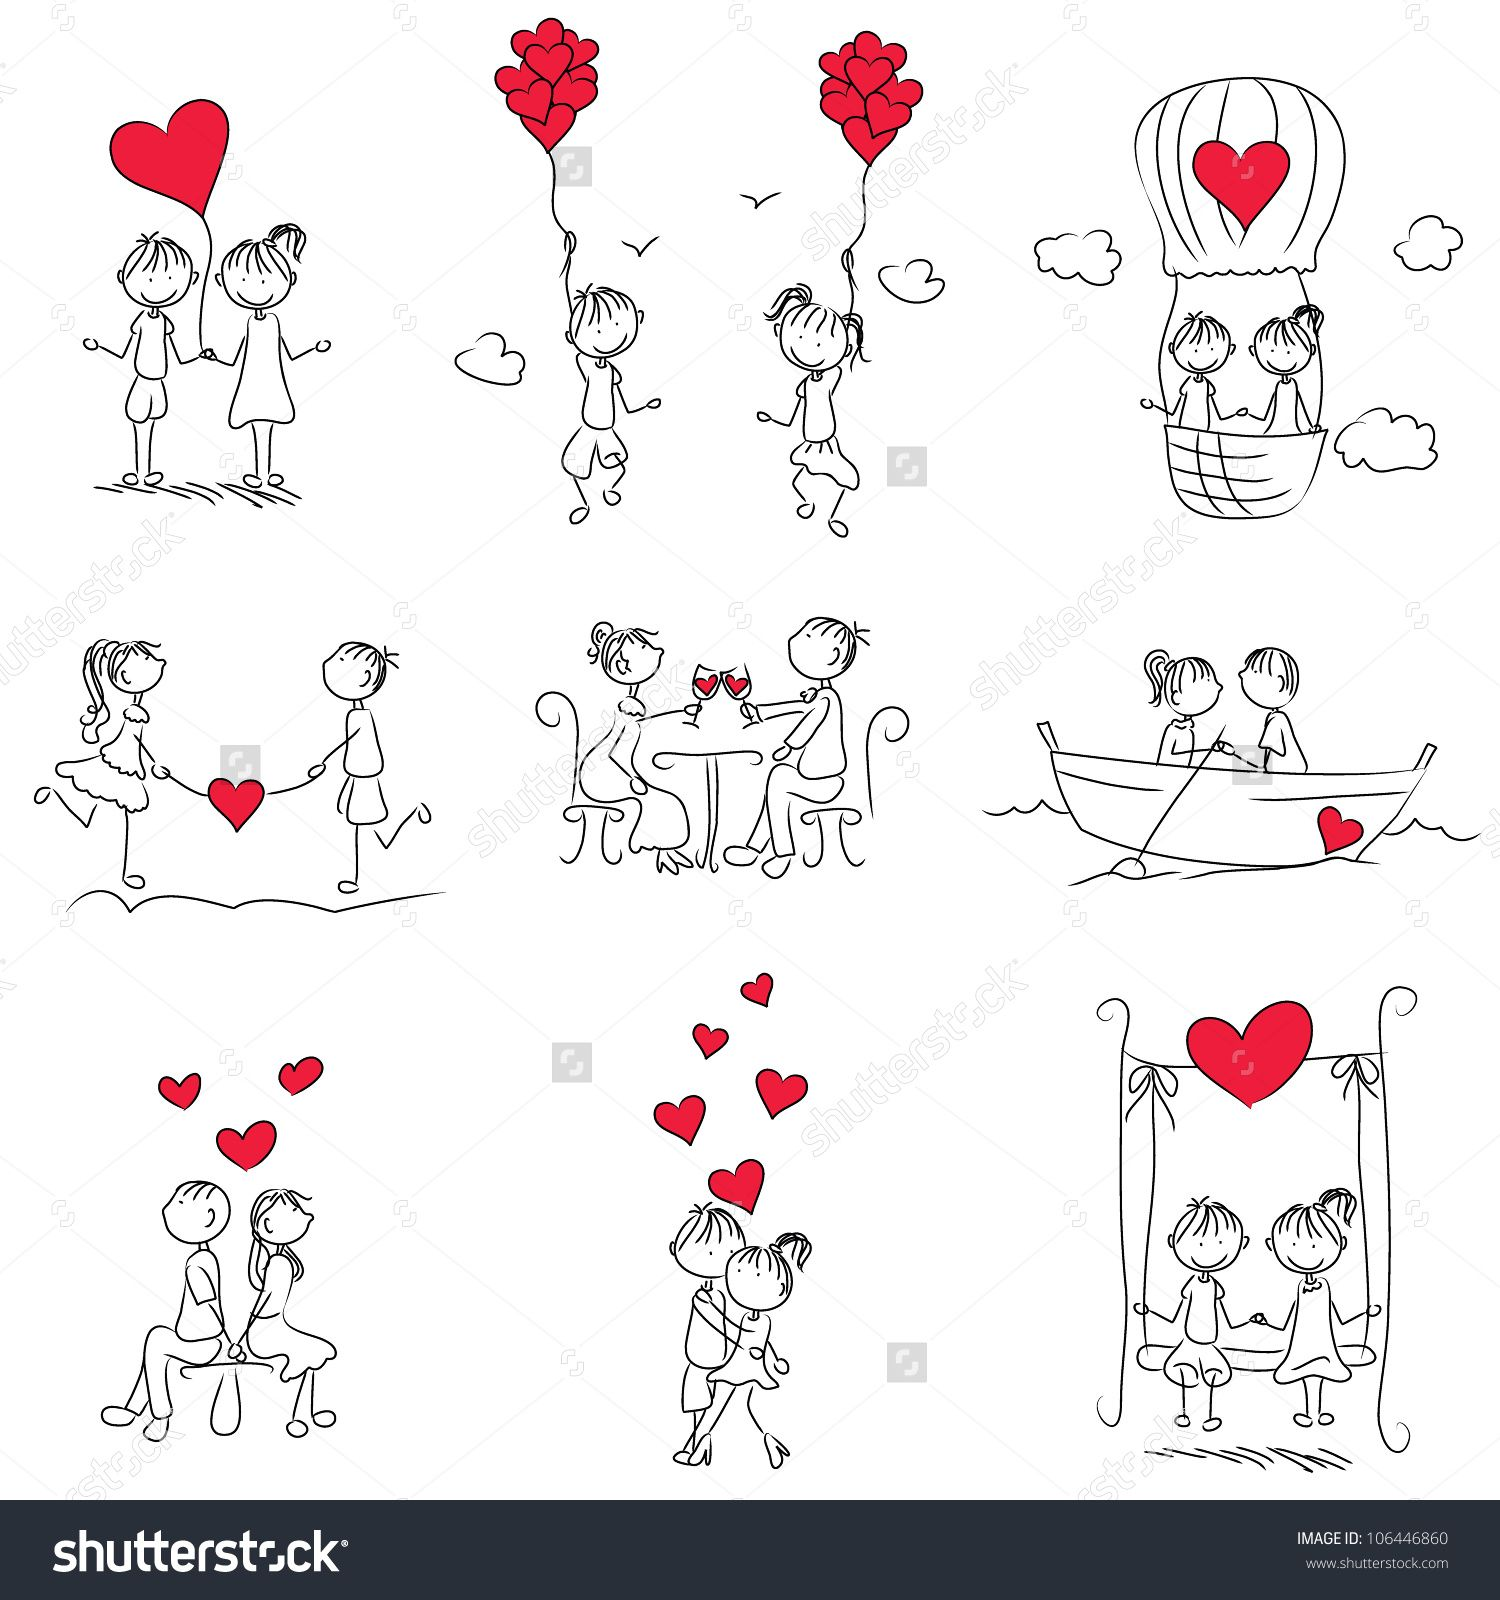 cartoon couple doodle with red heart shape | イラスト | pinterest